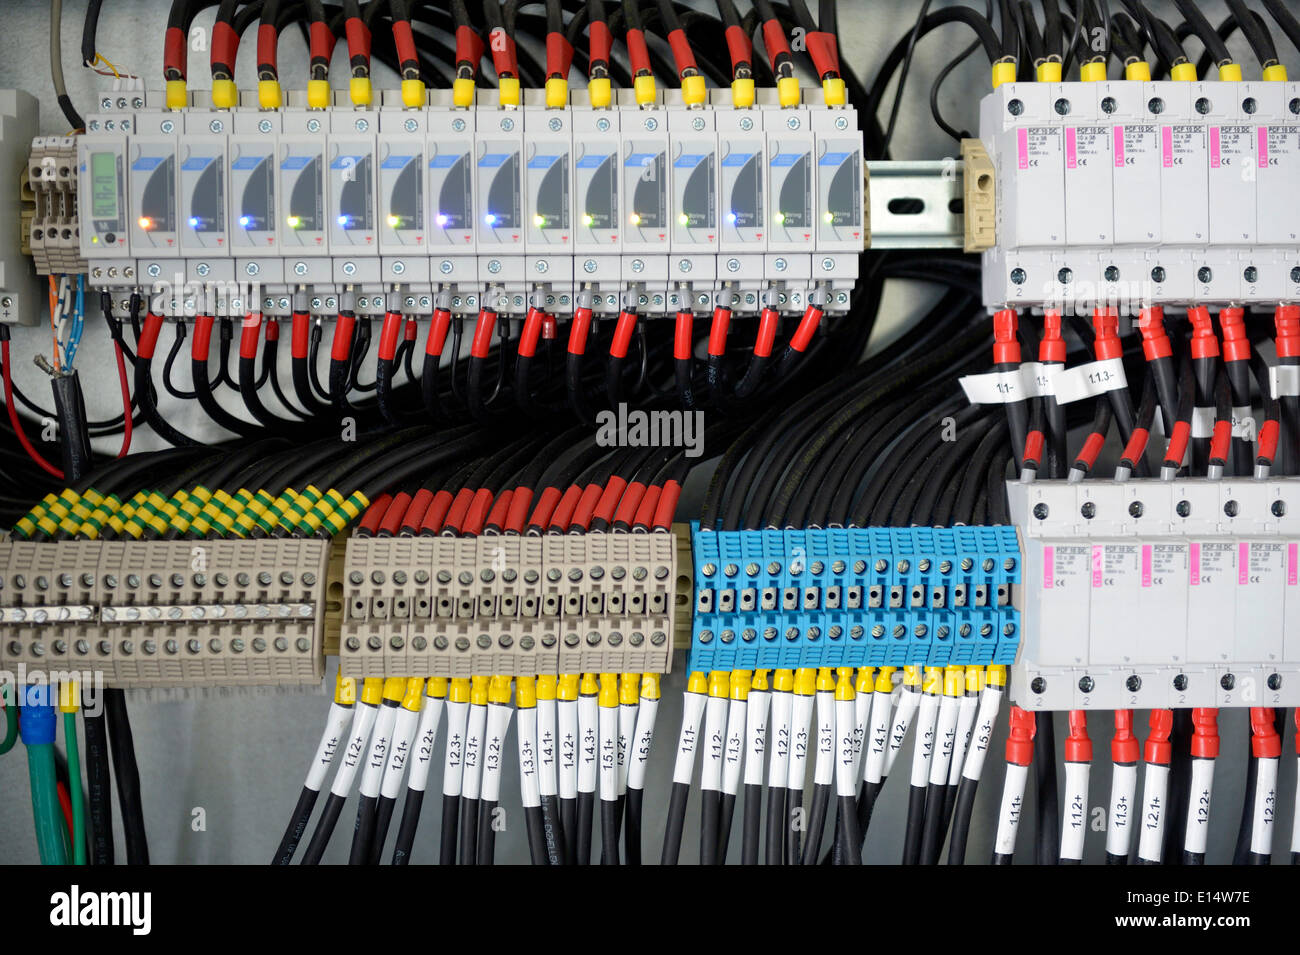 fuse box with many cables stock photo 69563746 alamy rh alamy com extending fuse box cables Automotive Fuses